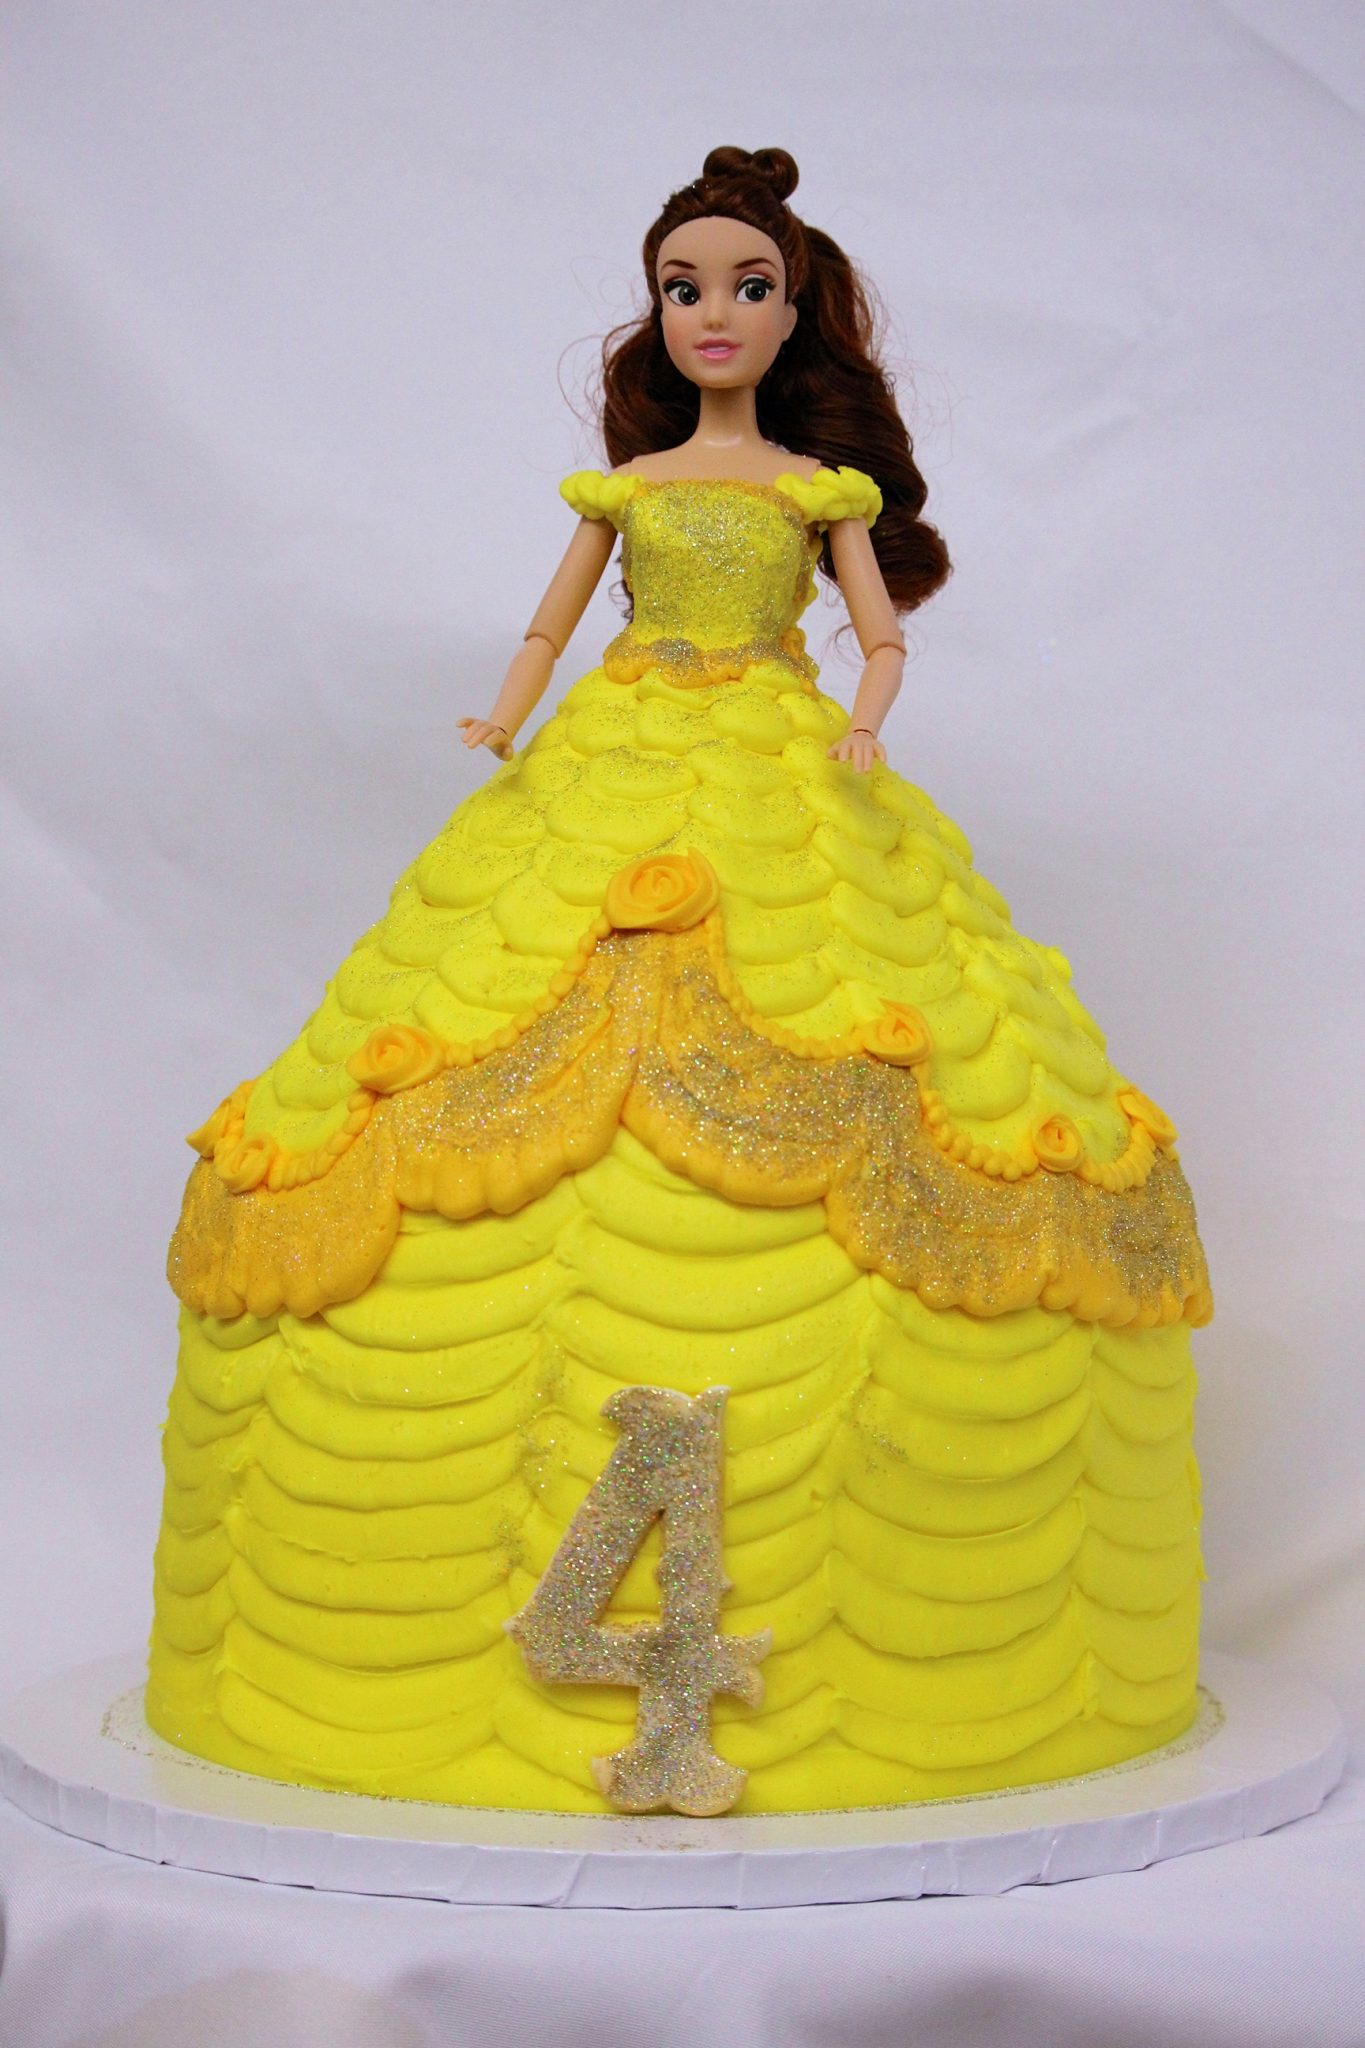 Doll Cake, Belle, Beauty, beast, cake, kids, birthday, party, cinottis, bakery, fun, barbie, dress